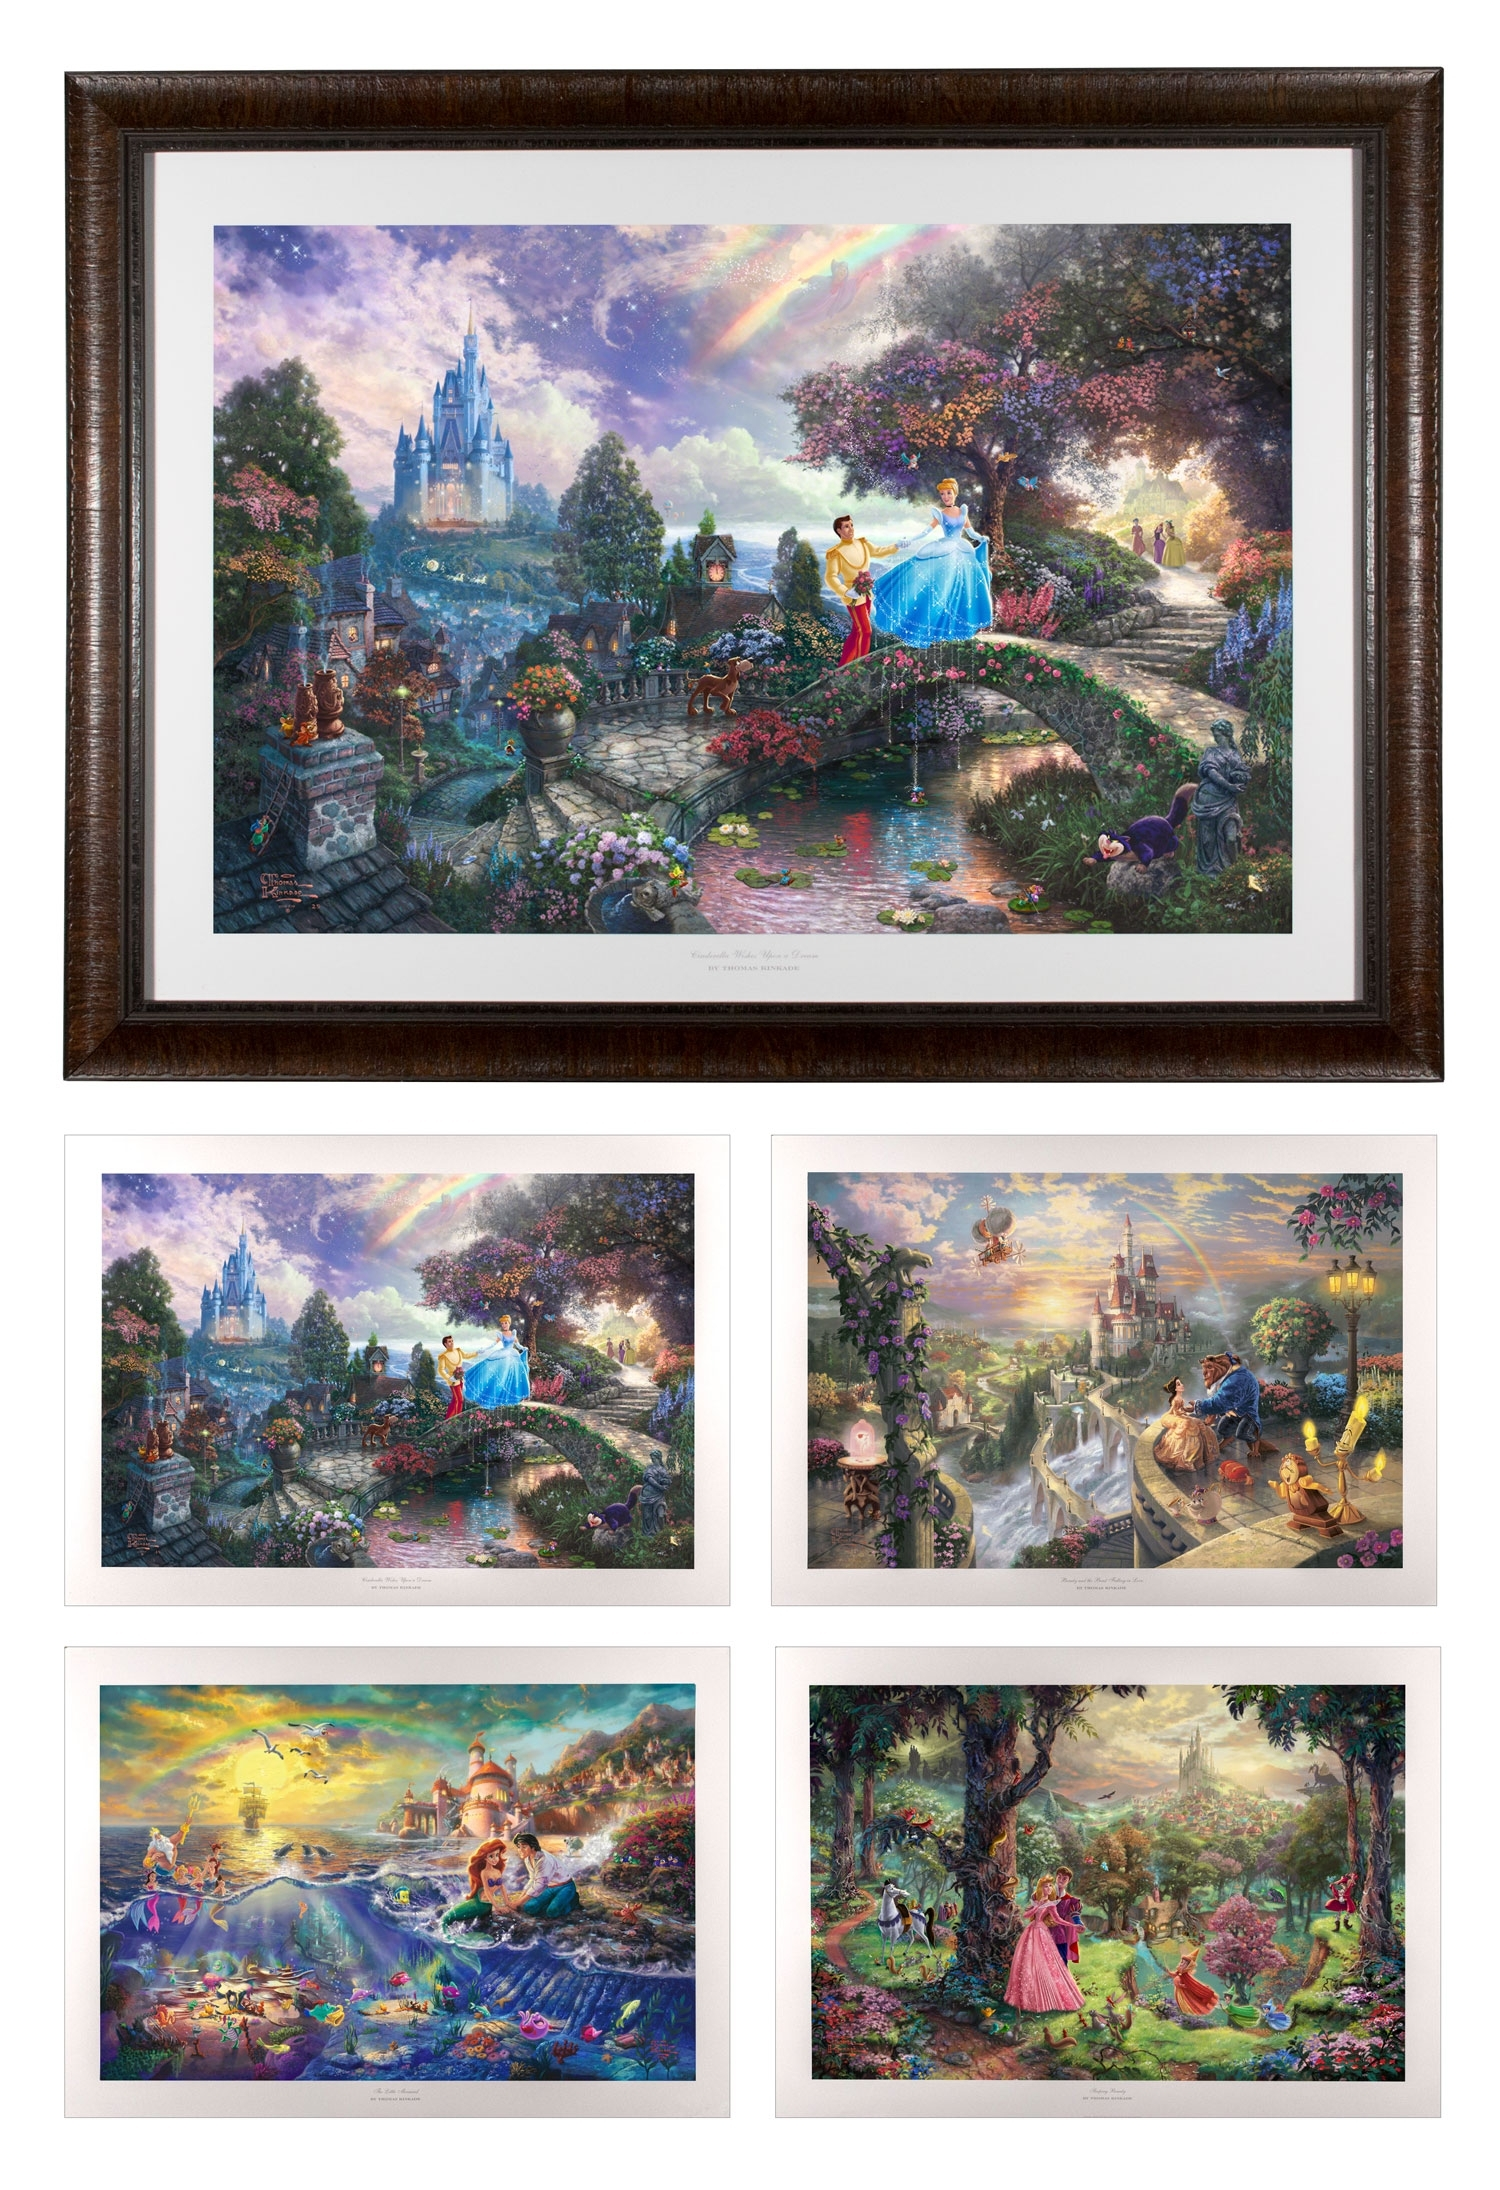 Ez Frame With Four Disney Images – 26? X 35? Framed Prints (rustic Intended For Most Recently Released Disney Framed Art Prints (View 6 of 15)